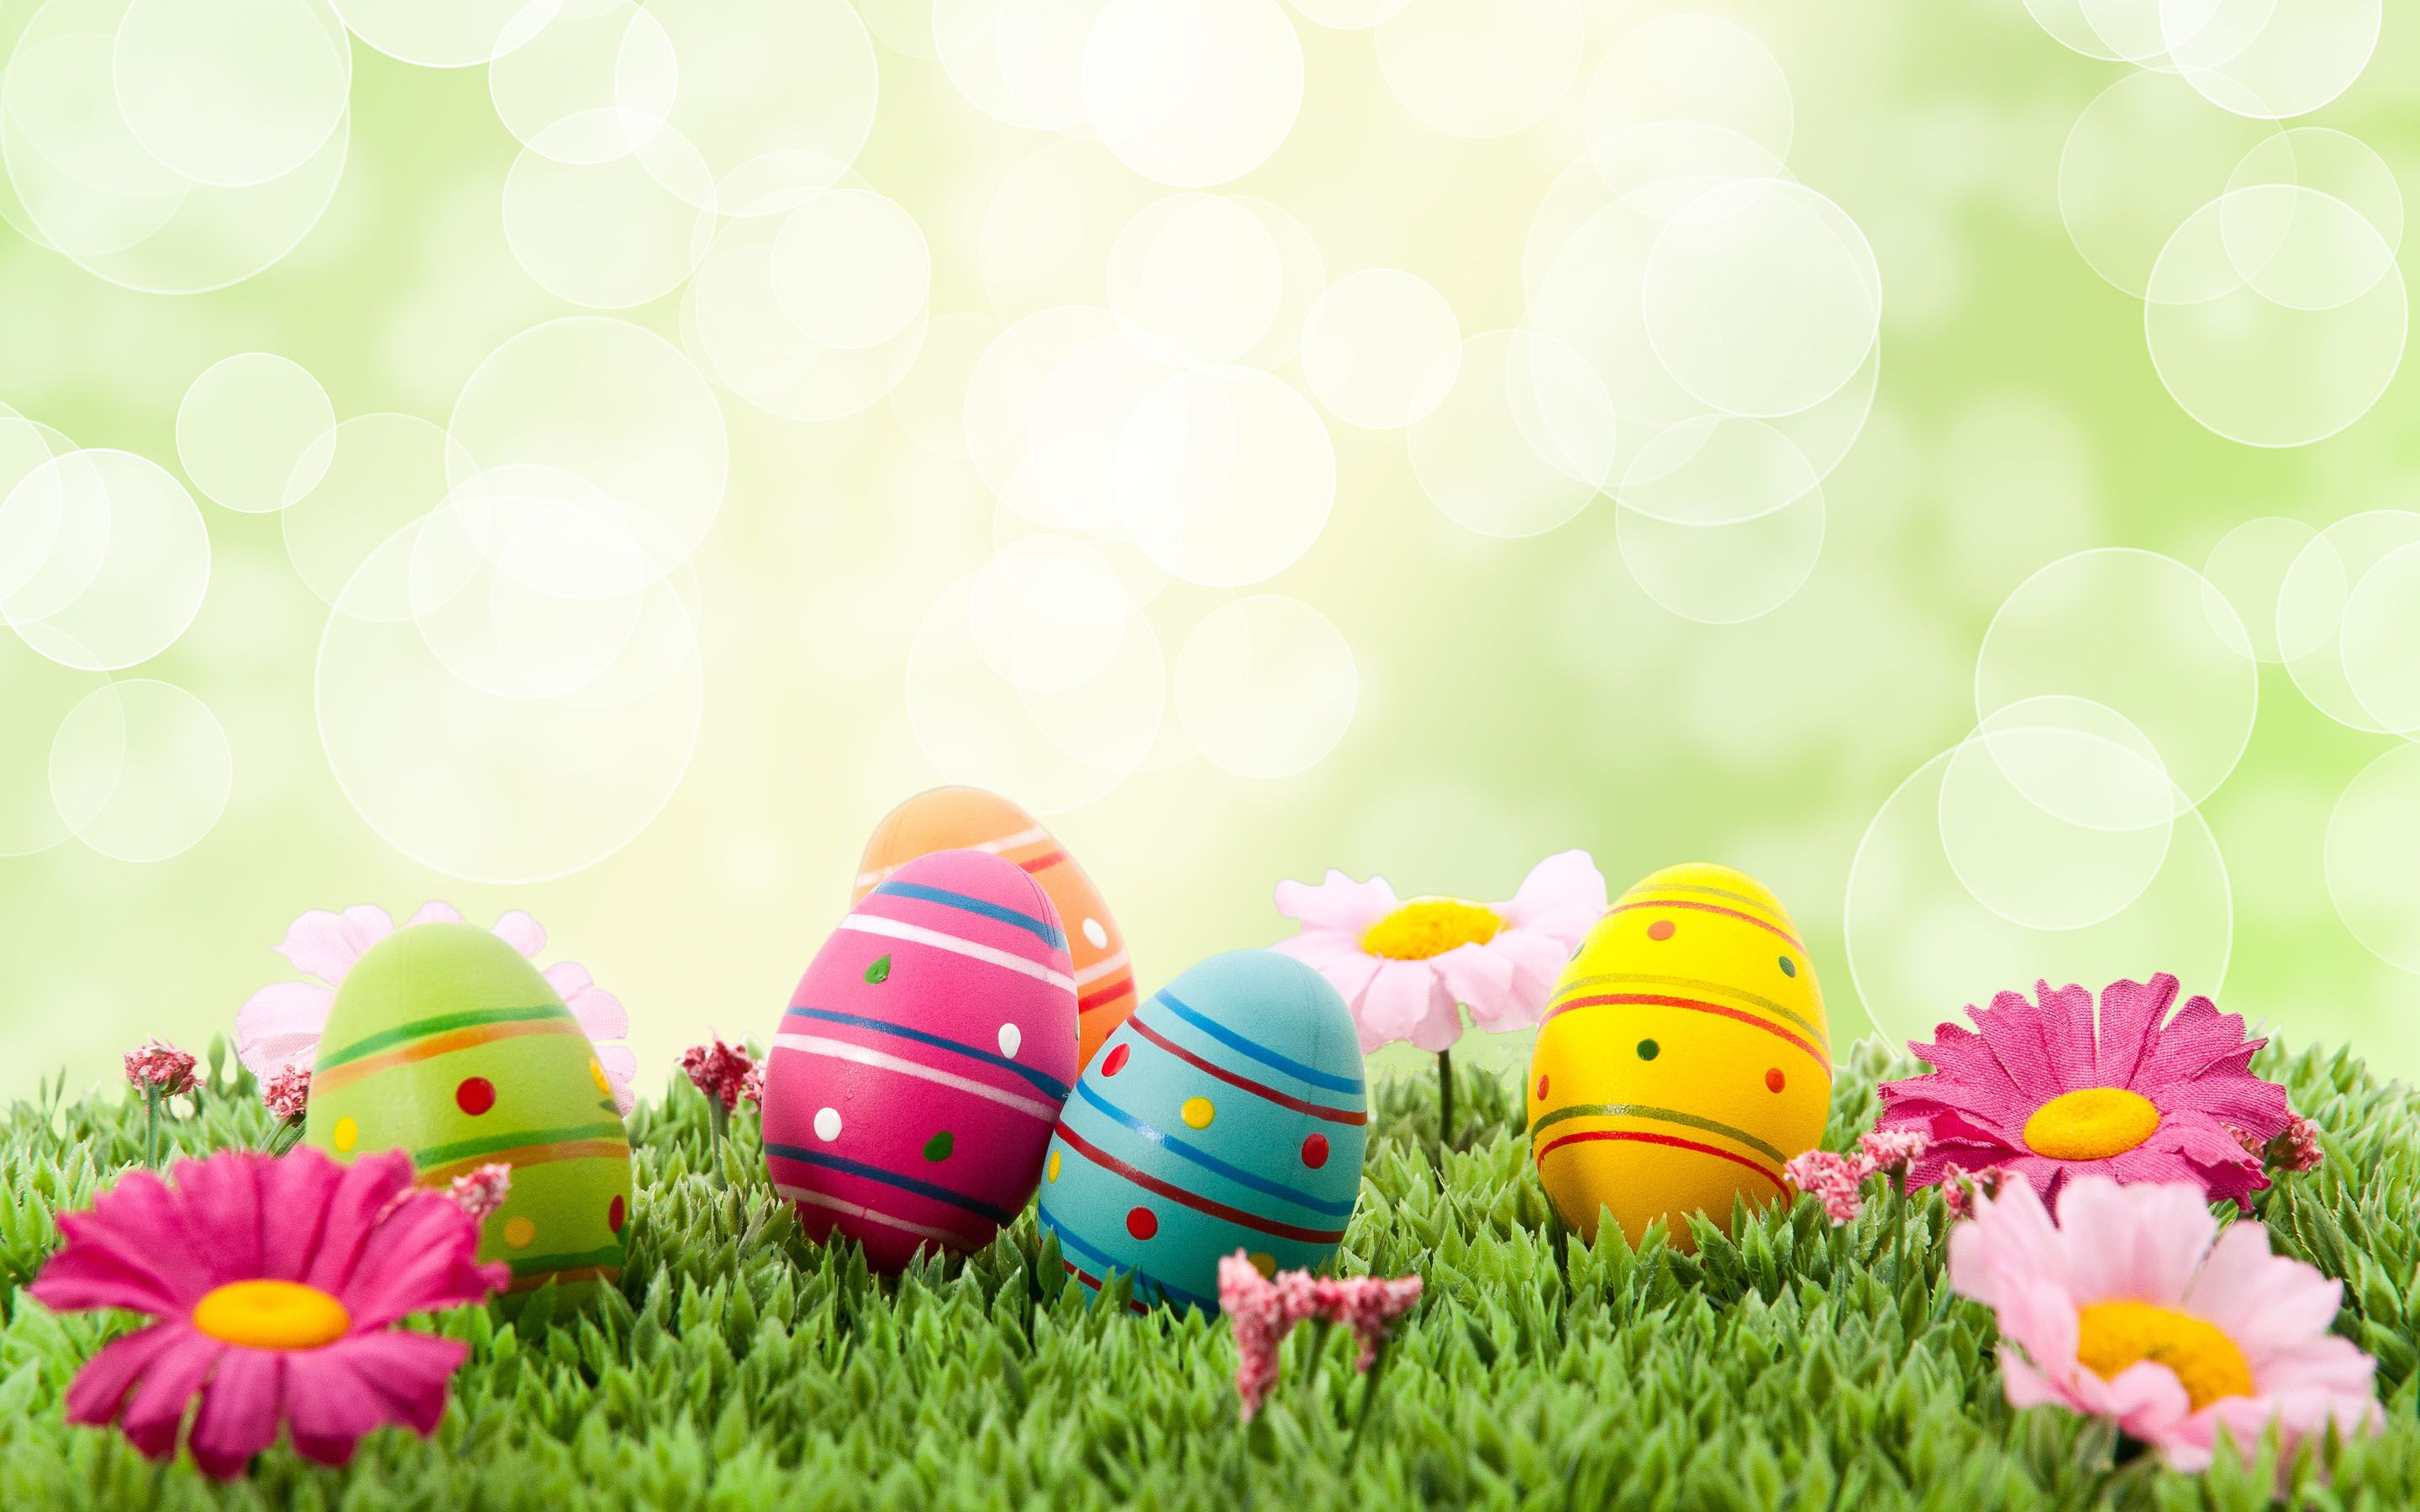 Easter Wallpapers   Top Easter Backgrounds   WallpaperAccess 2880x1800